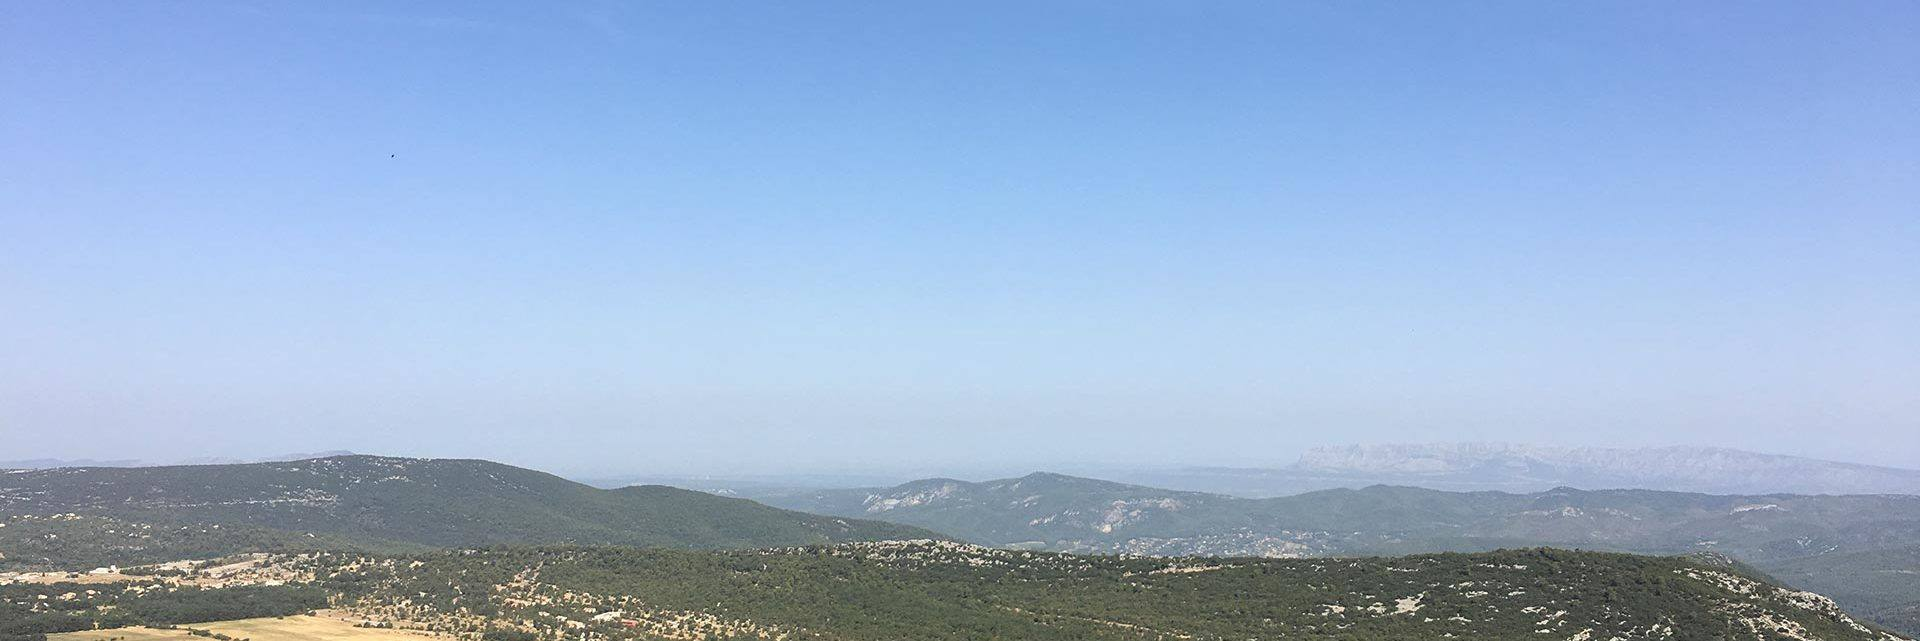 Panoramic view from Sainte Baume